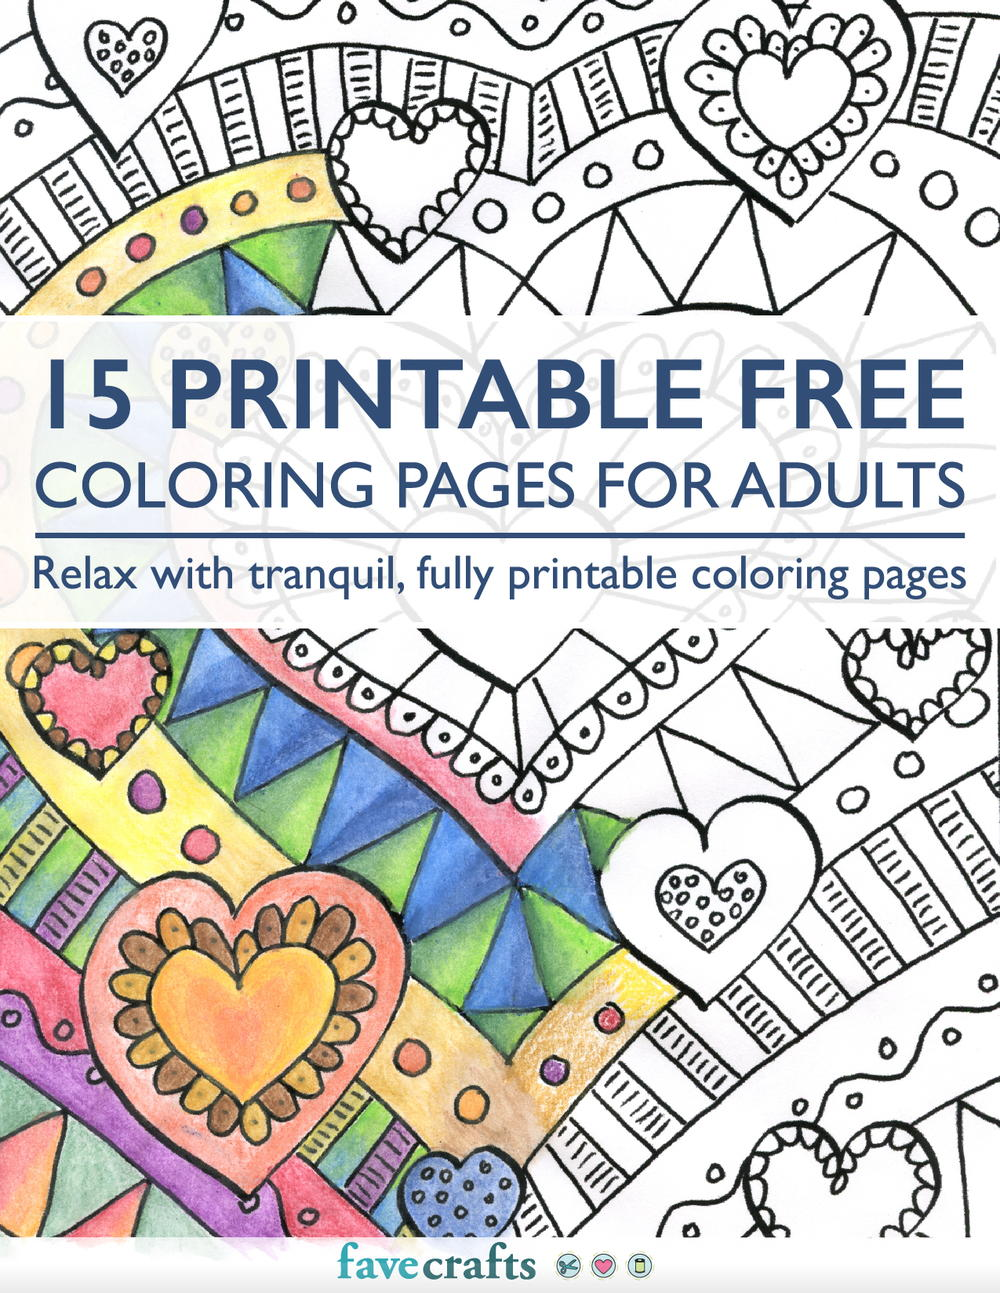 Free coloring pages com printable - 15 Printable Free Coloring Pages For Adults Free Ebook Favecrafts Com